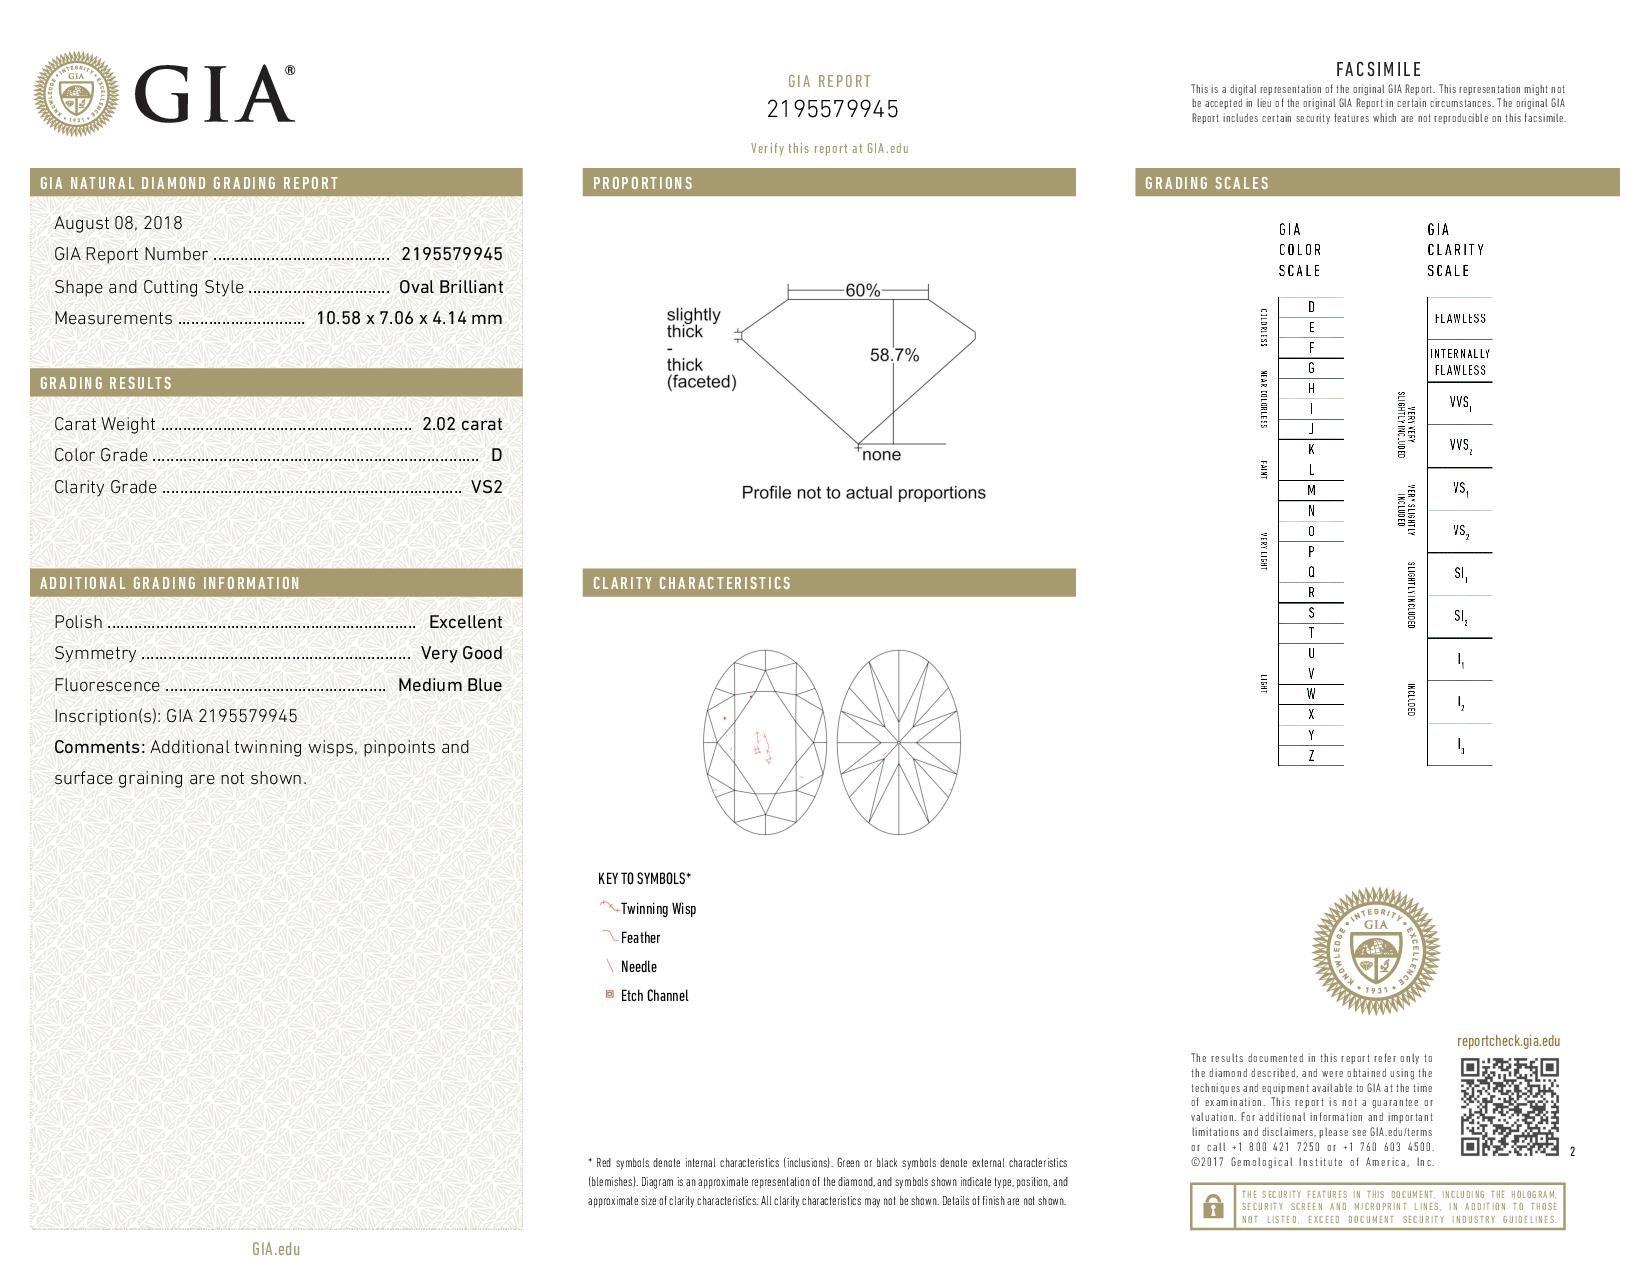 This is a 2.02 carat oval shape, D color, VS2 clarity natural diamond accompanied by a GIA grading report.